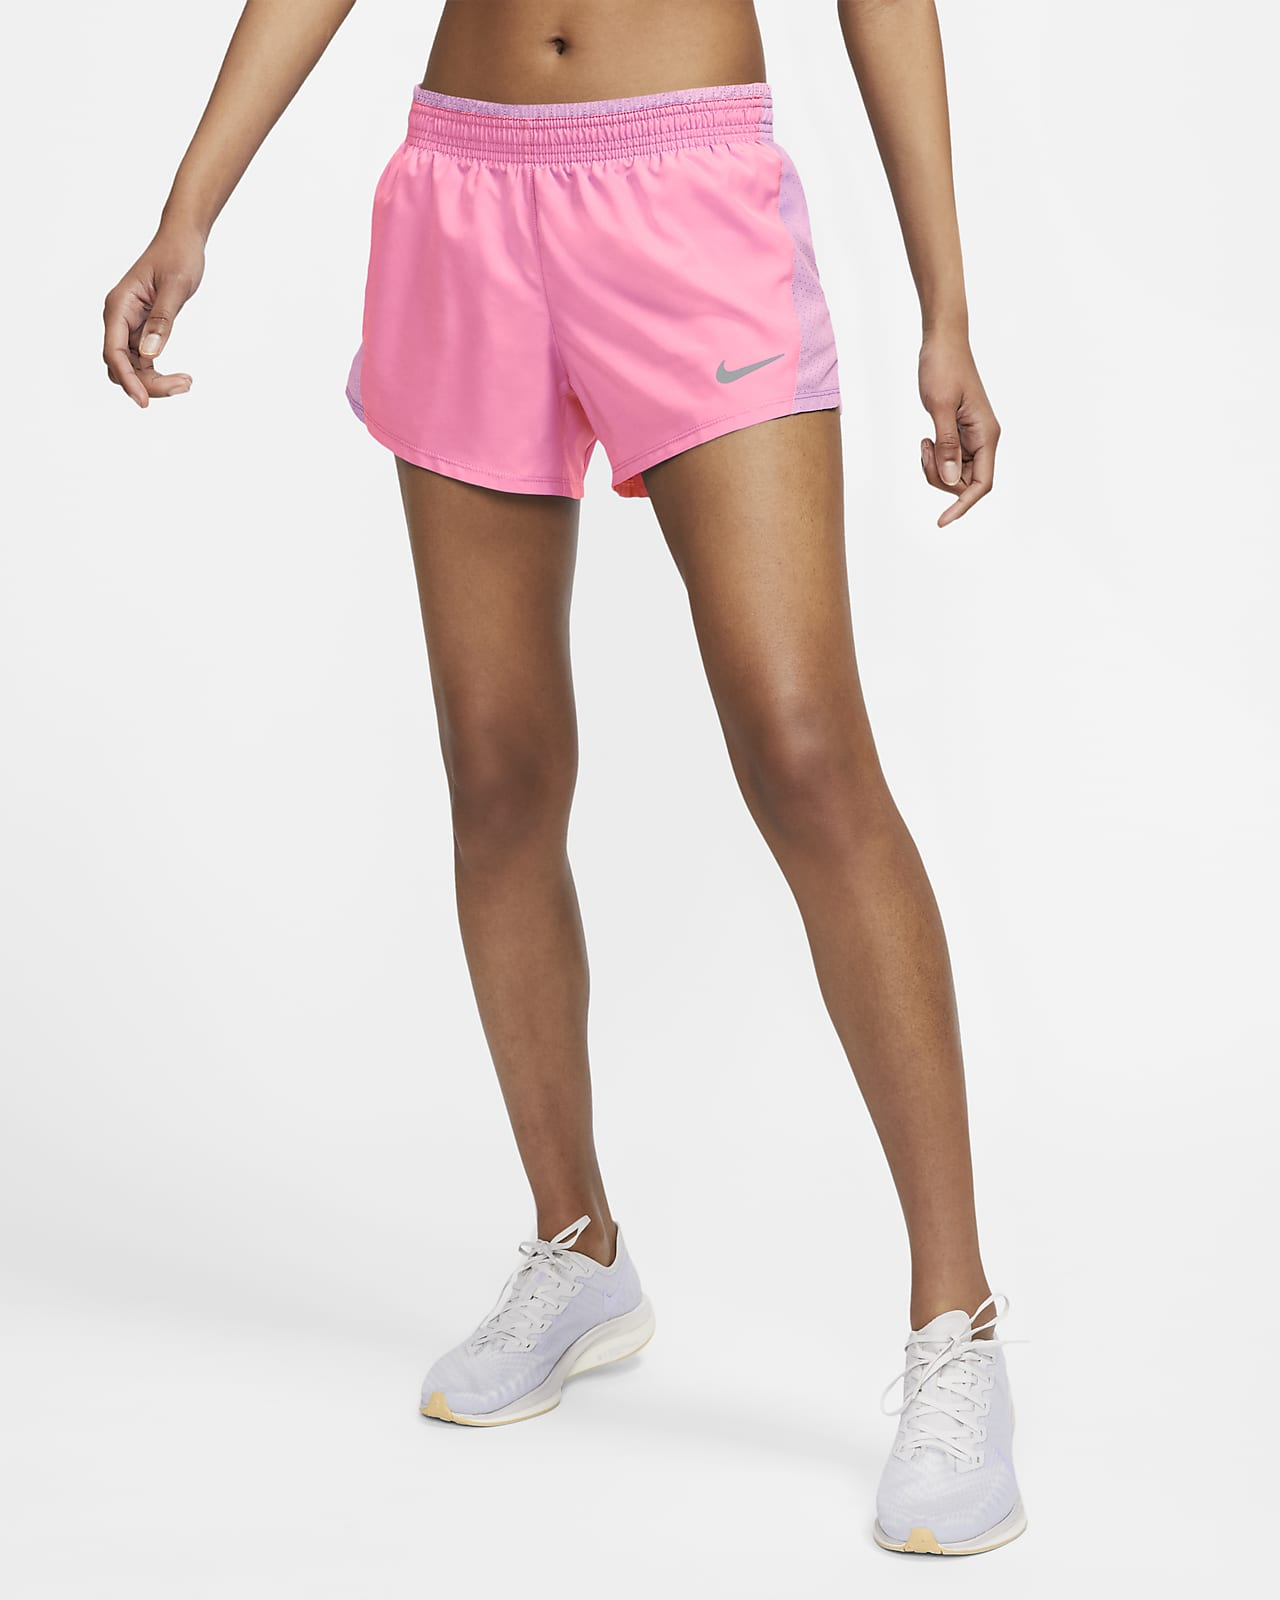 Nike 10K Women's Running Shorts